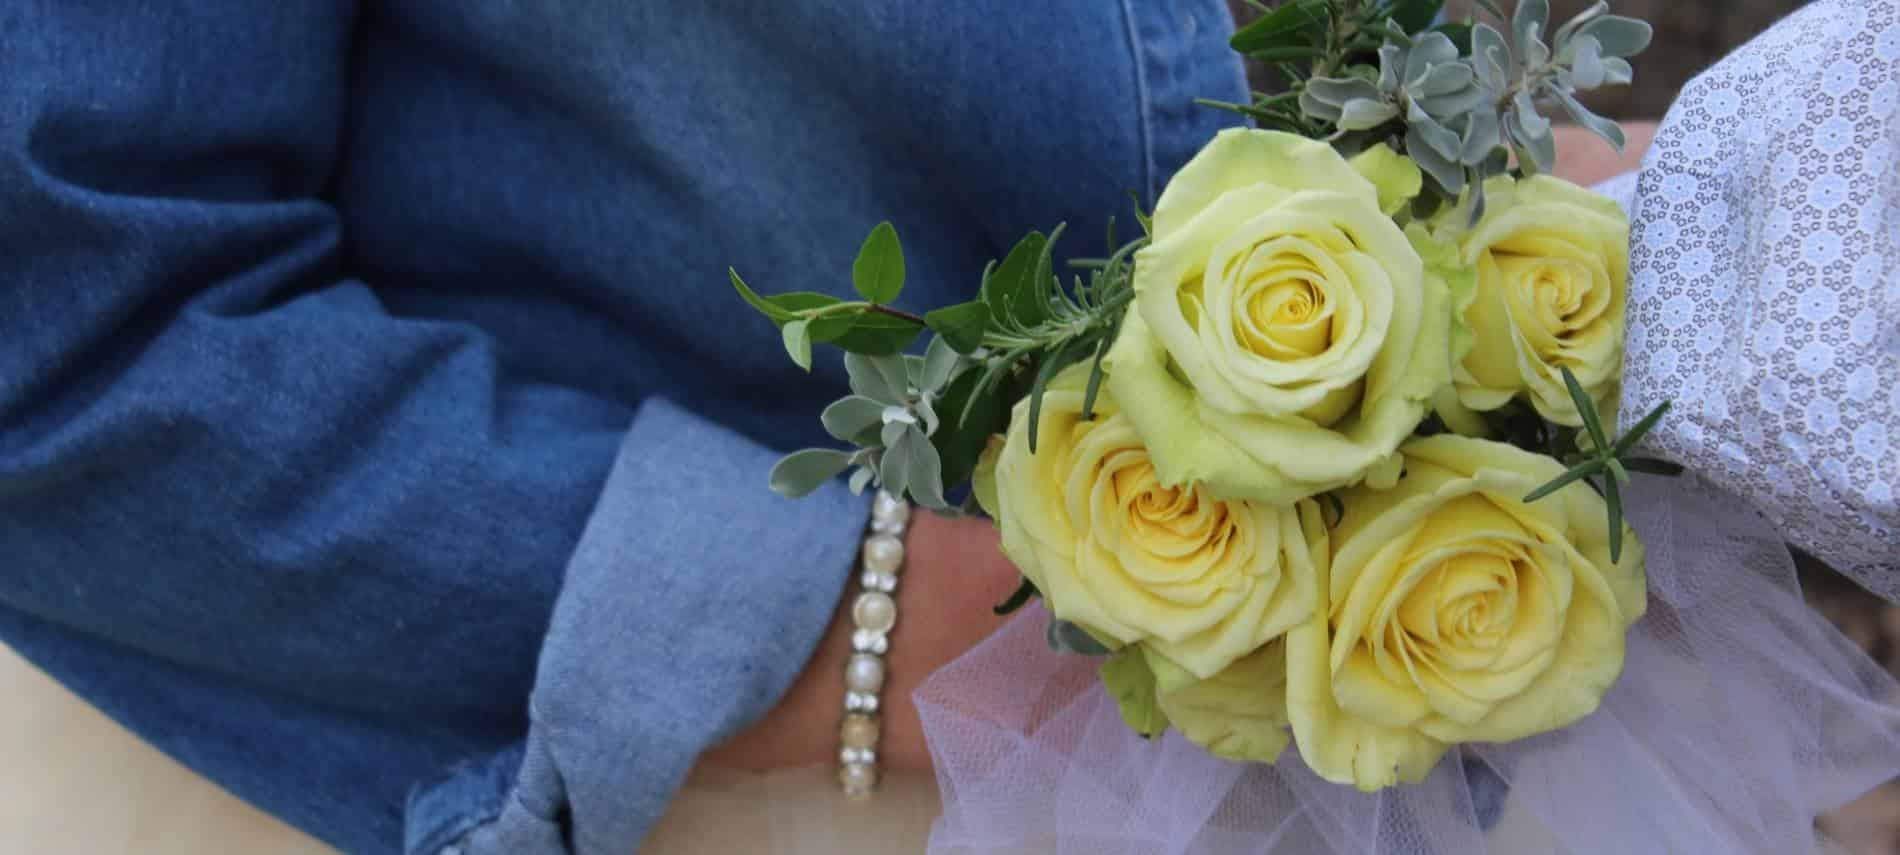 rose bouquet held by a bride on her elopement